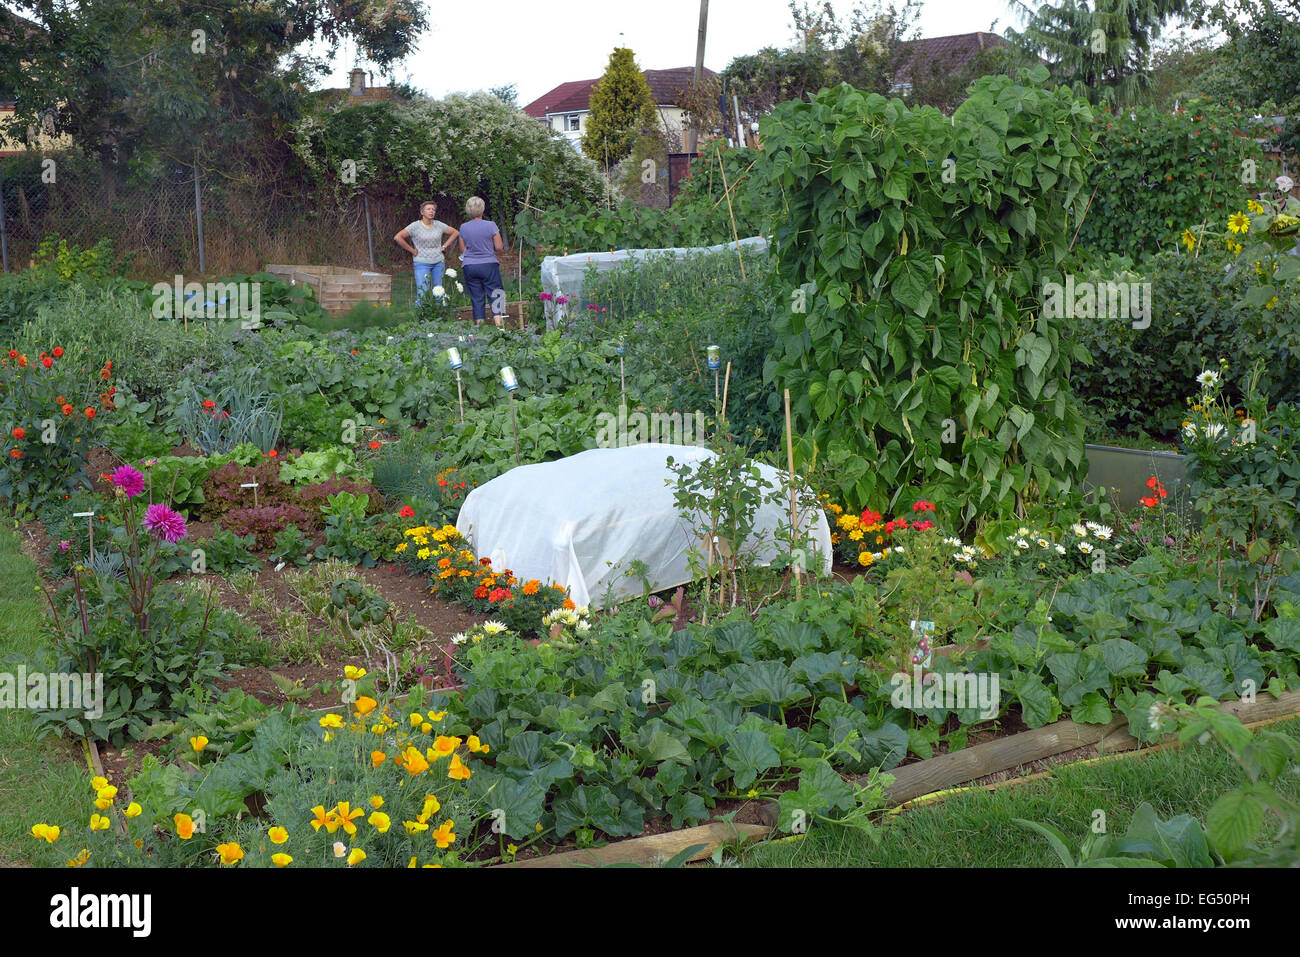 An allotment garden in Chippenham  Wiltshire with  a mix of vegetables and flowers. Allotment owner socialise. - Stock Image